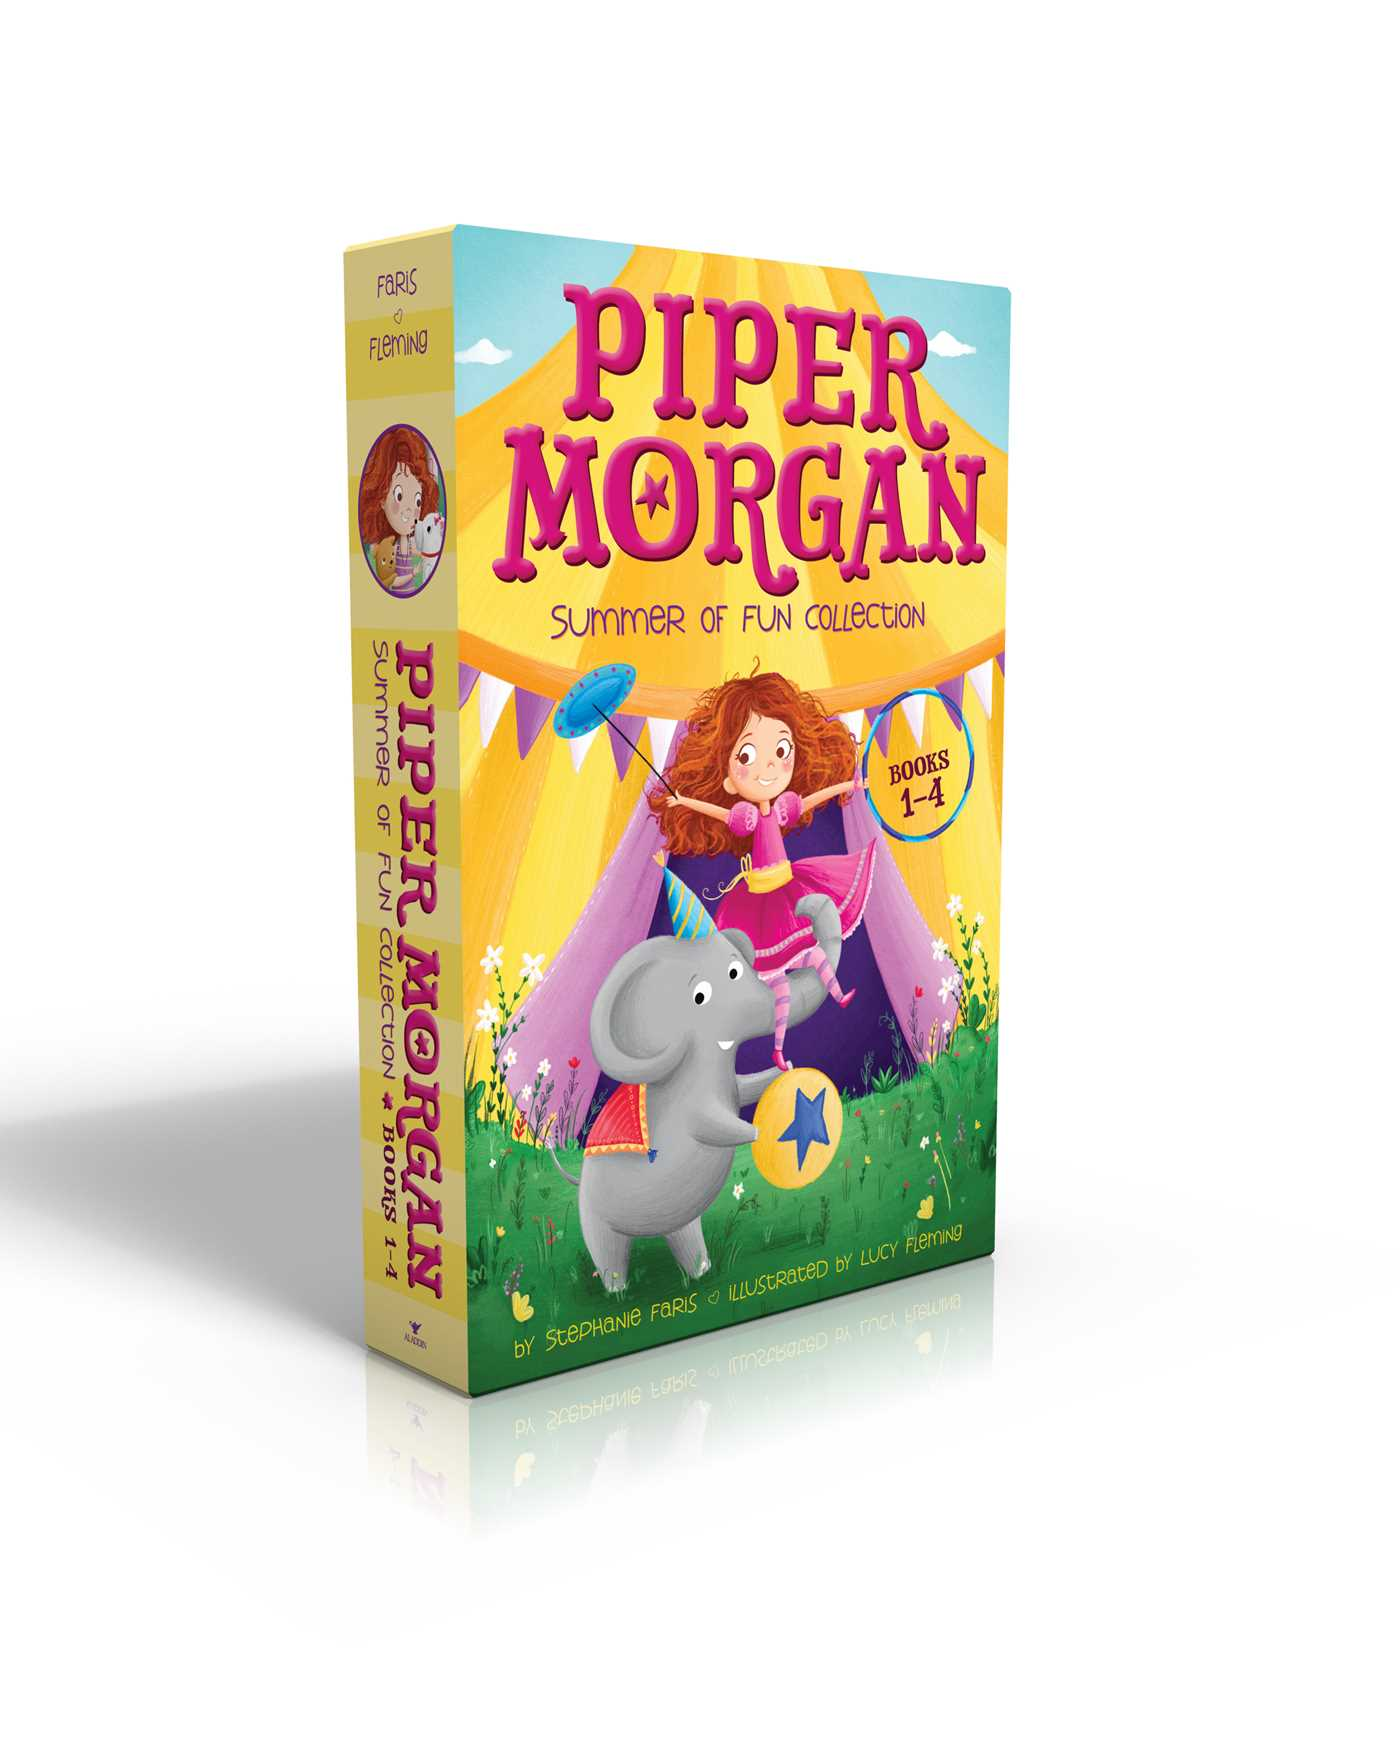 Piper morgan summer of fun collection books 1 4 9781481499781 hr